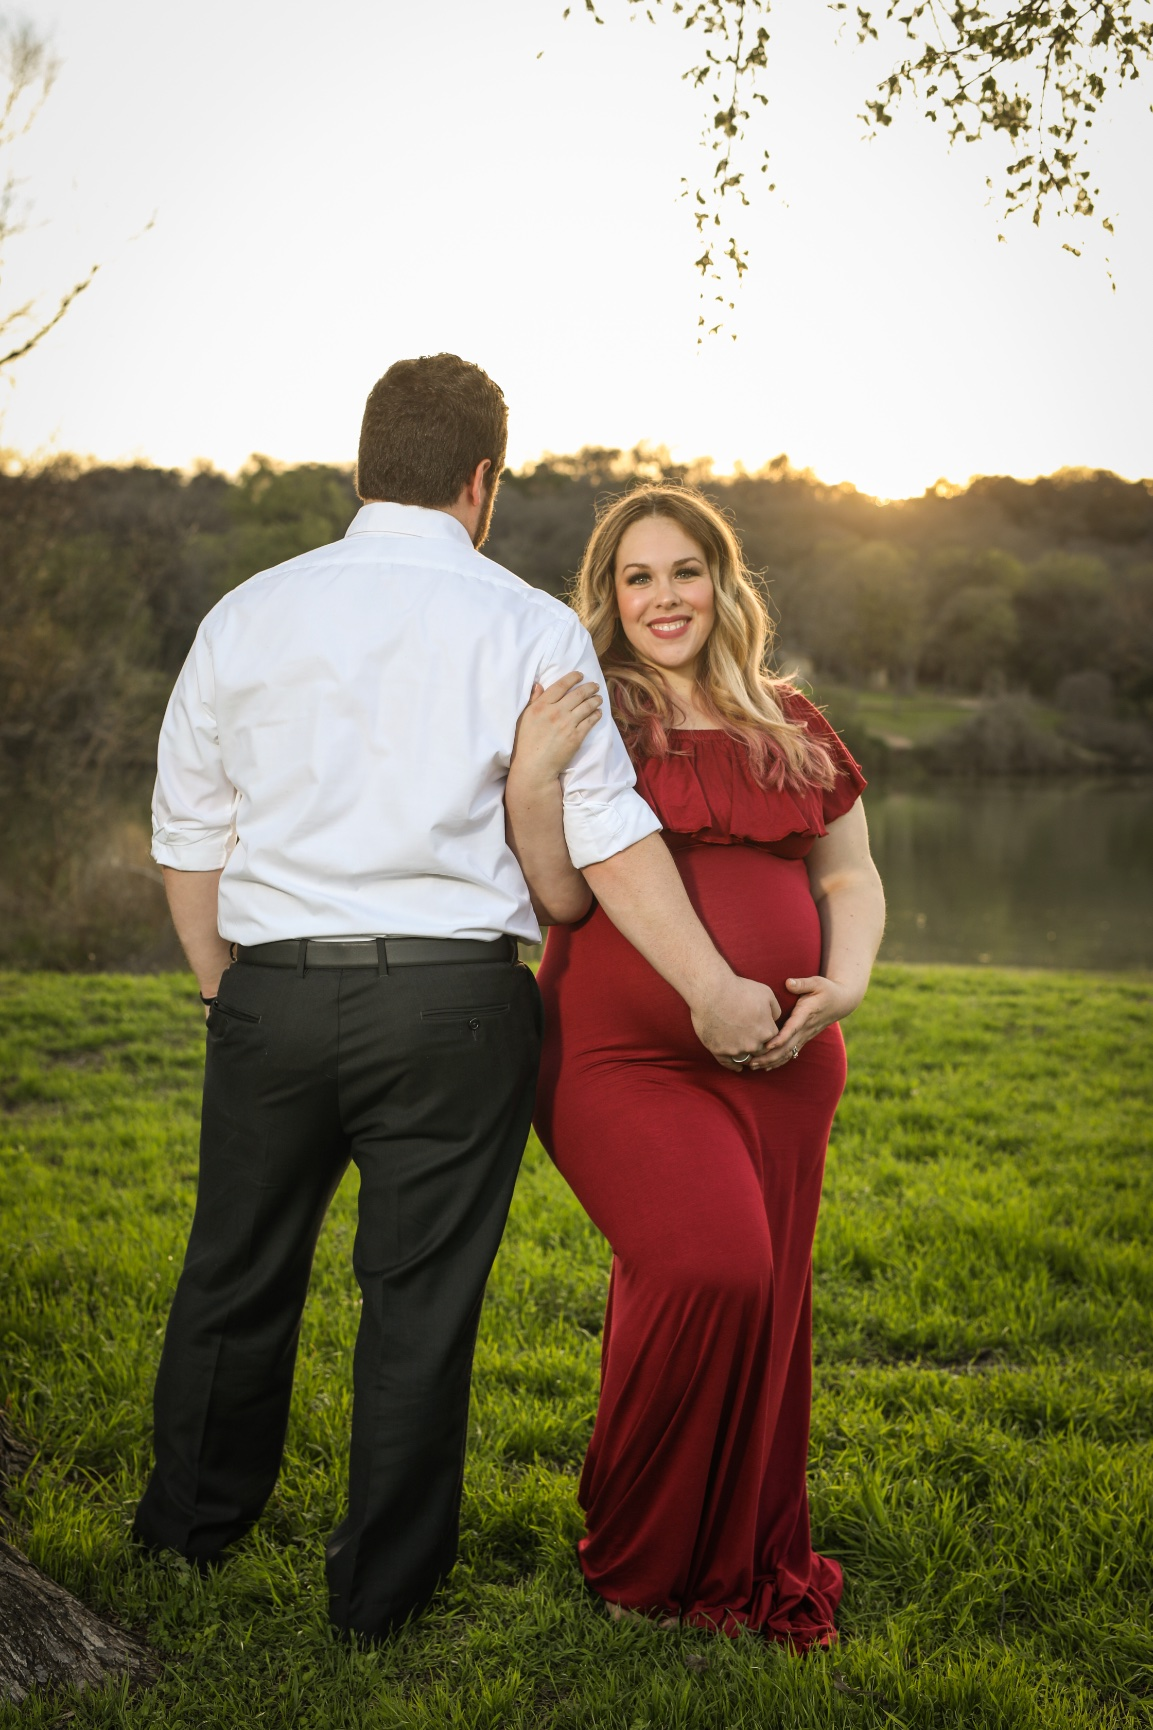 Looking for inspiration for your winter maternity photoshoot? Check these out by this Waco, Texas blogger!